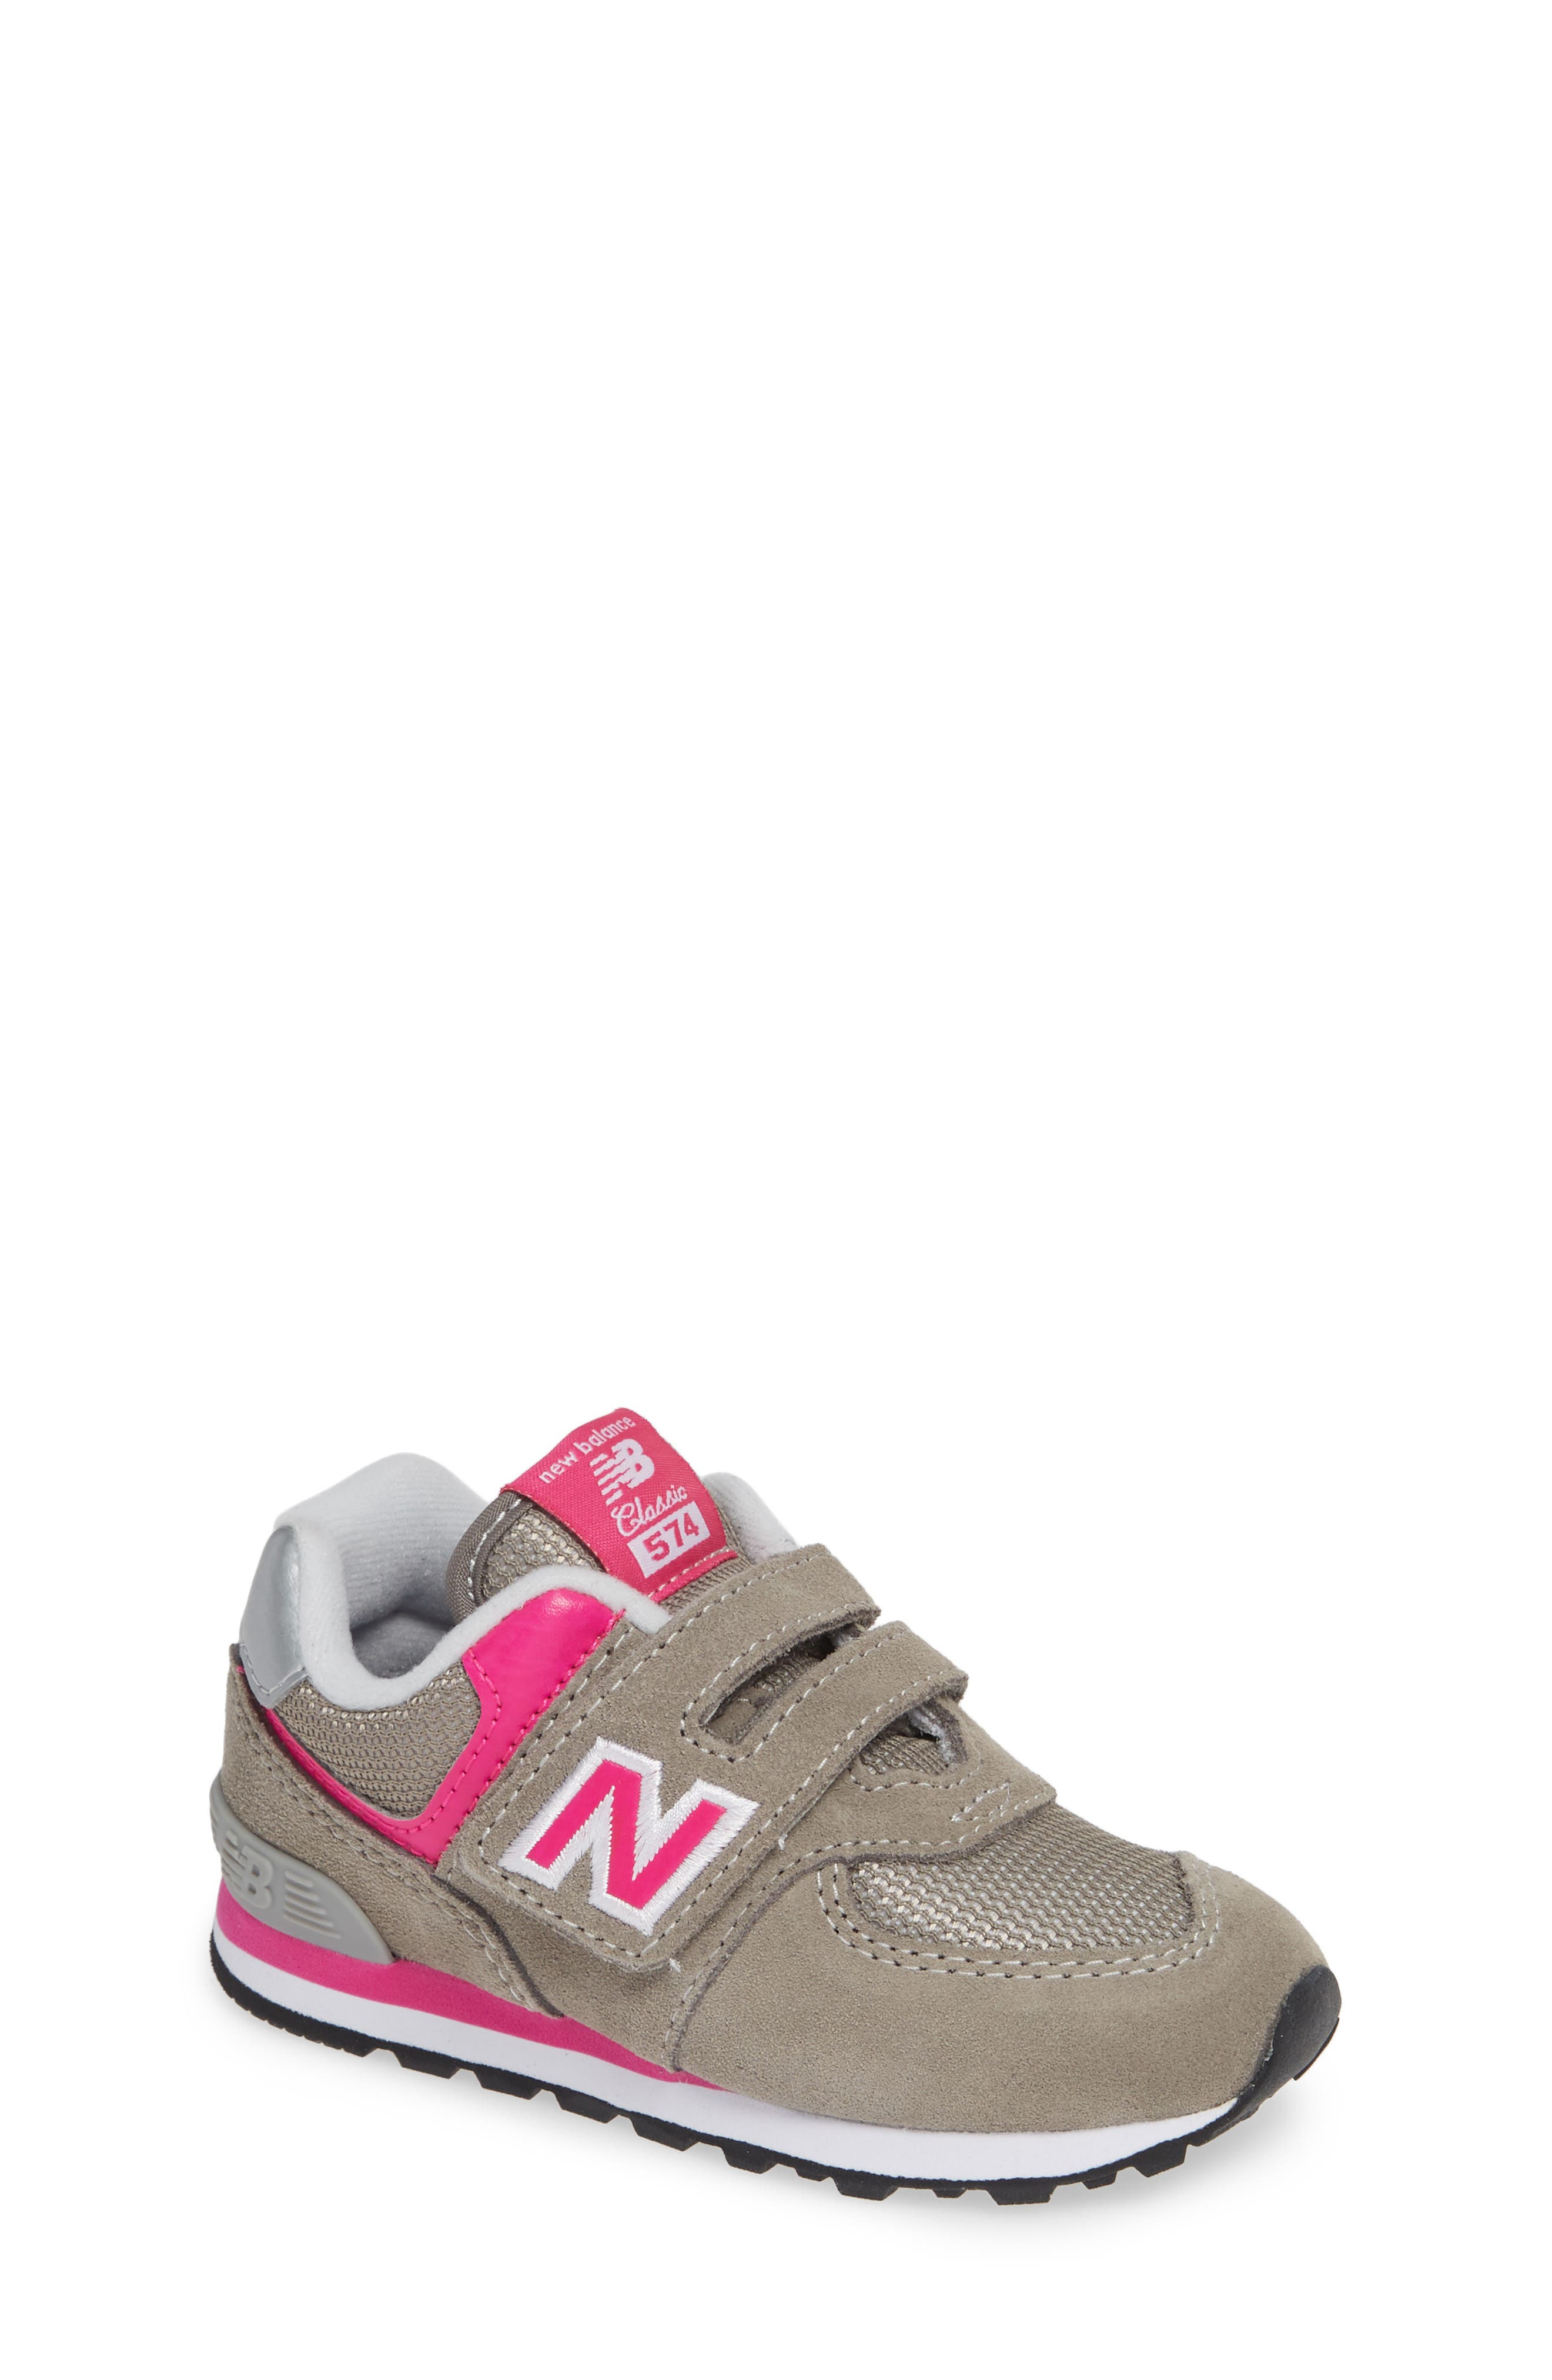 NEW BALANCE '574 Core' Sneaker, Main, color, GREY/ PINK